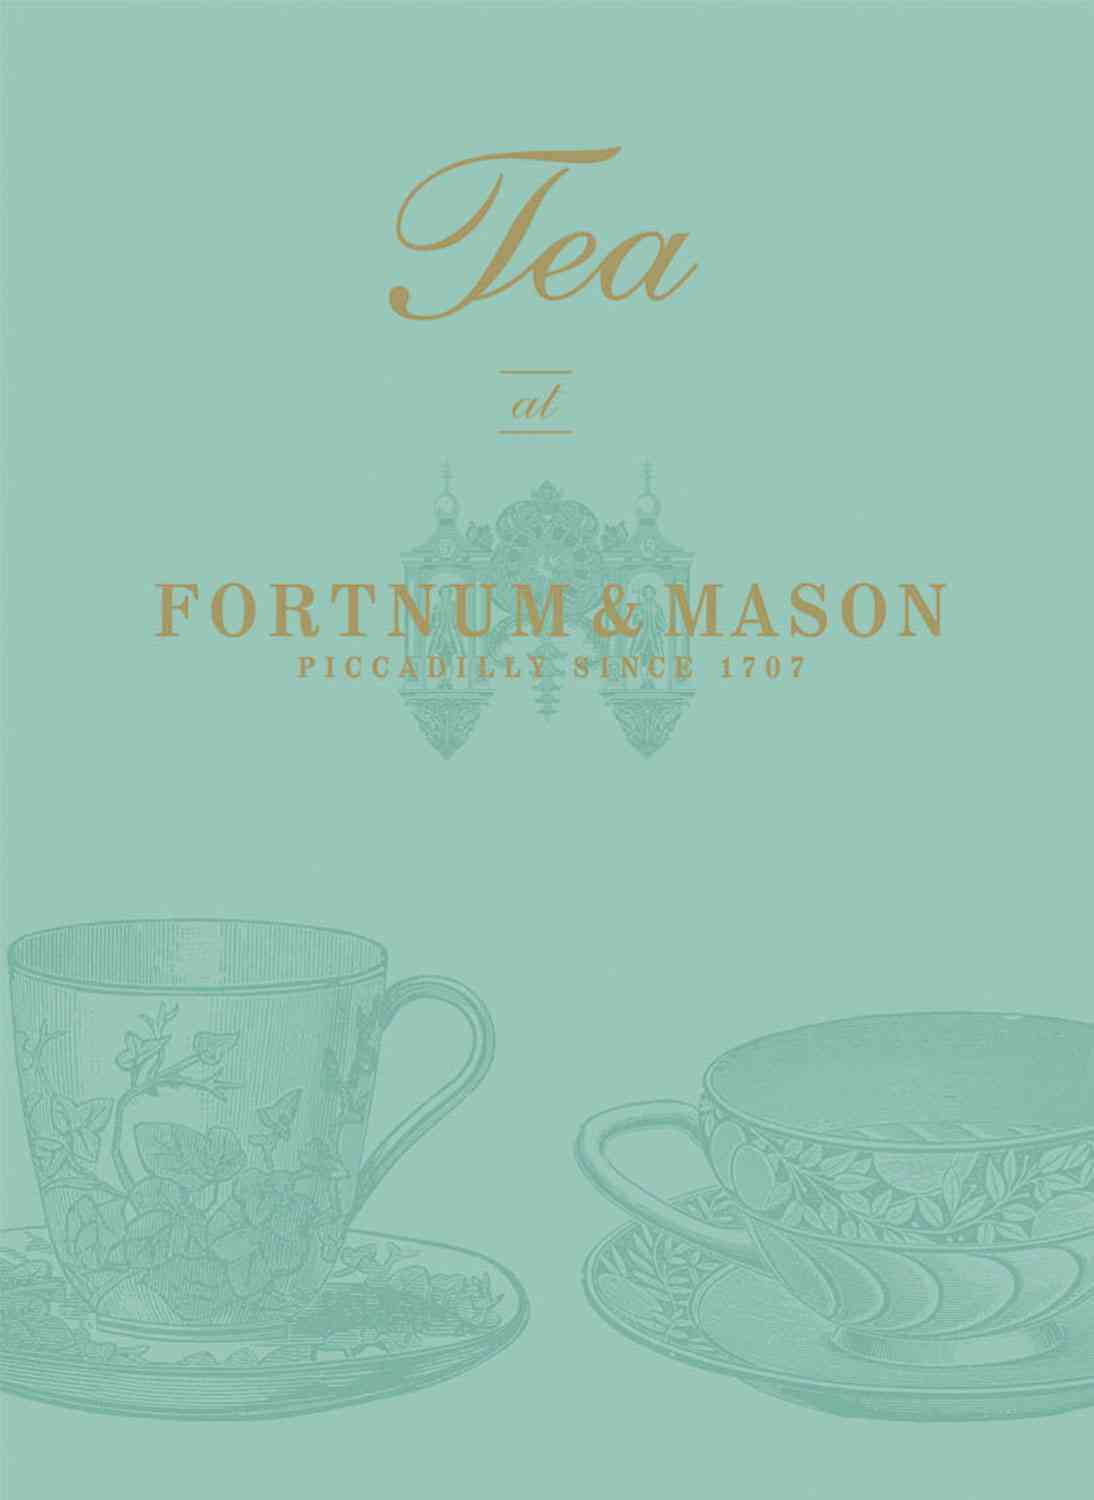 Tea at Fortnum & Mason: Piccadilly Since 1707 (Hardcover)